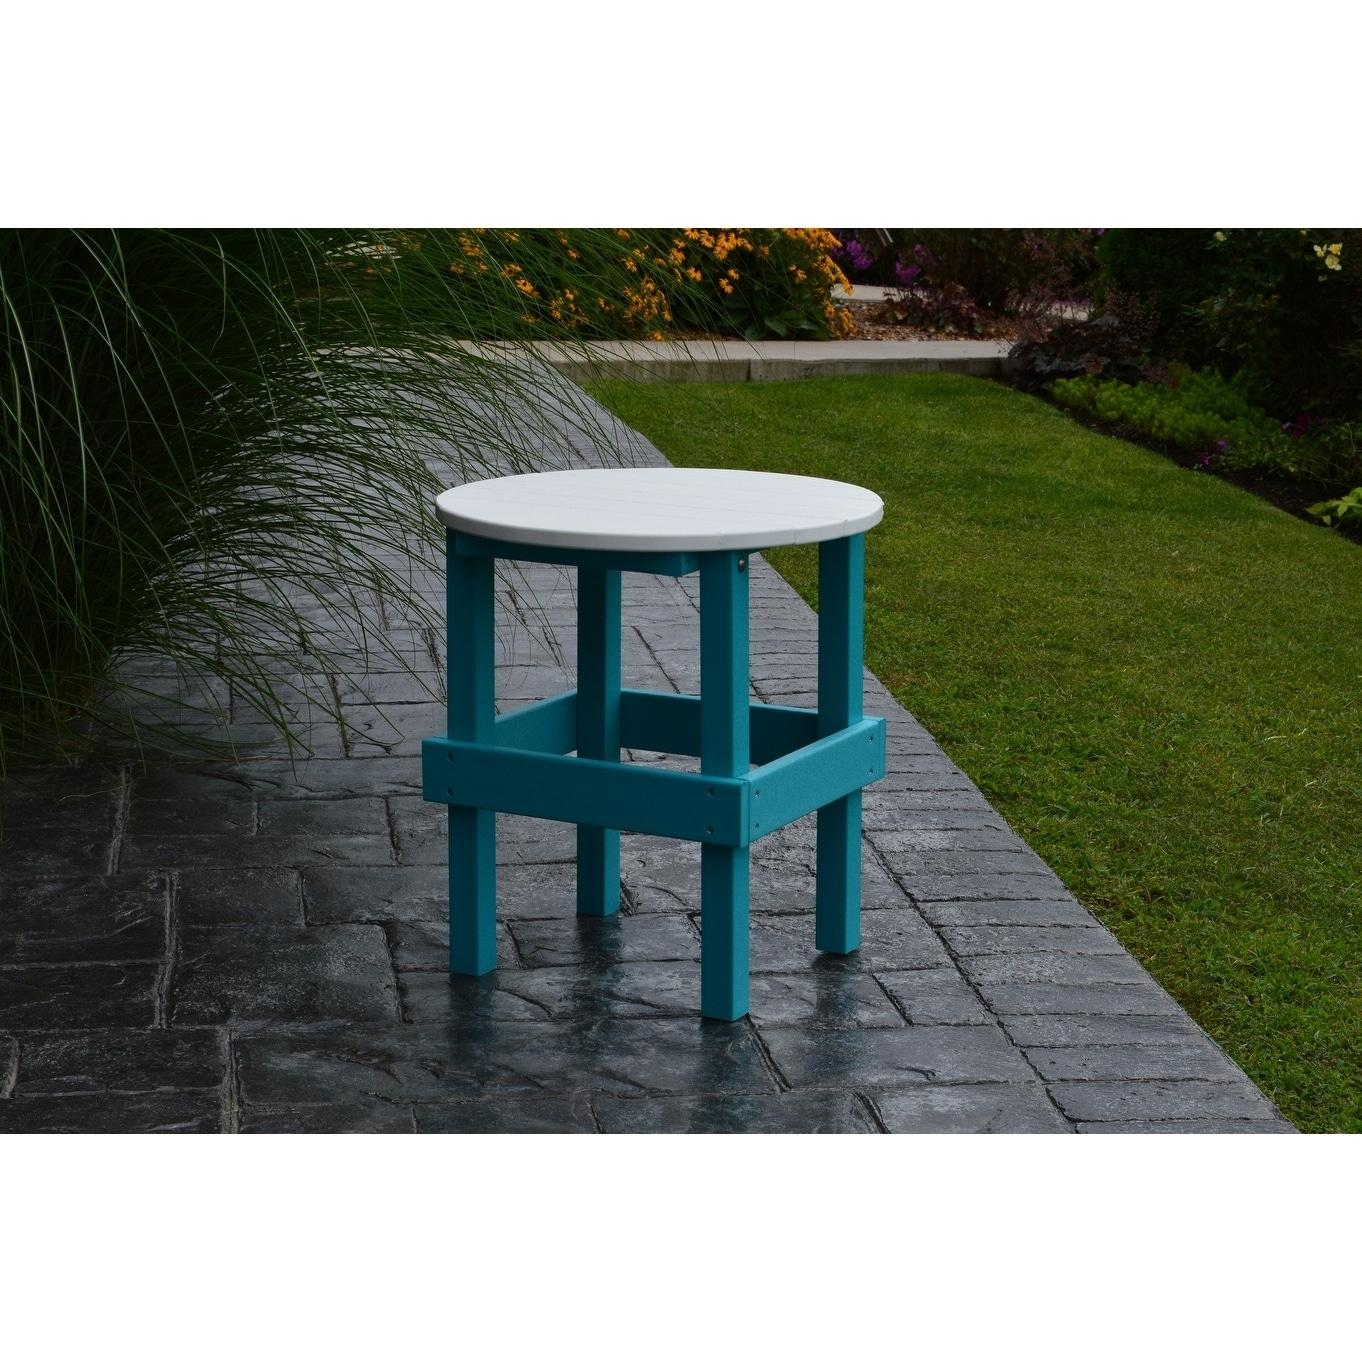 Outdoor Round Side Table w/ White Top - Recycled Plastic